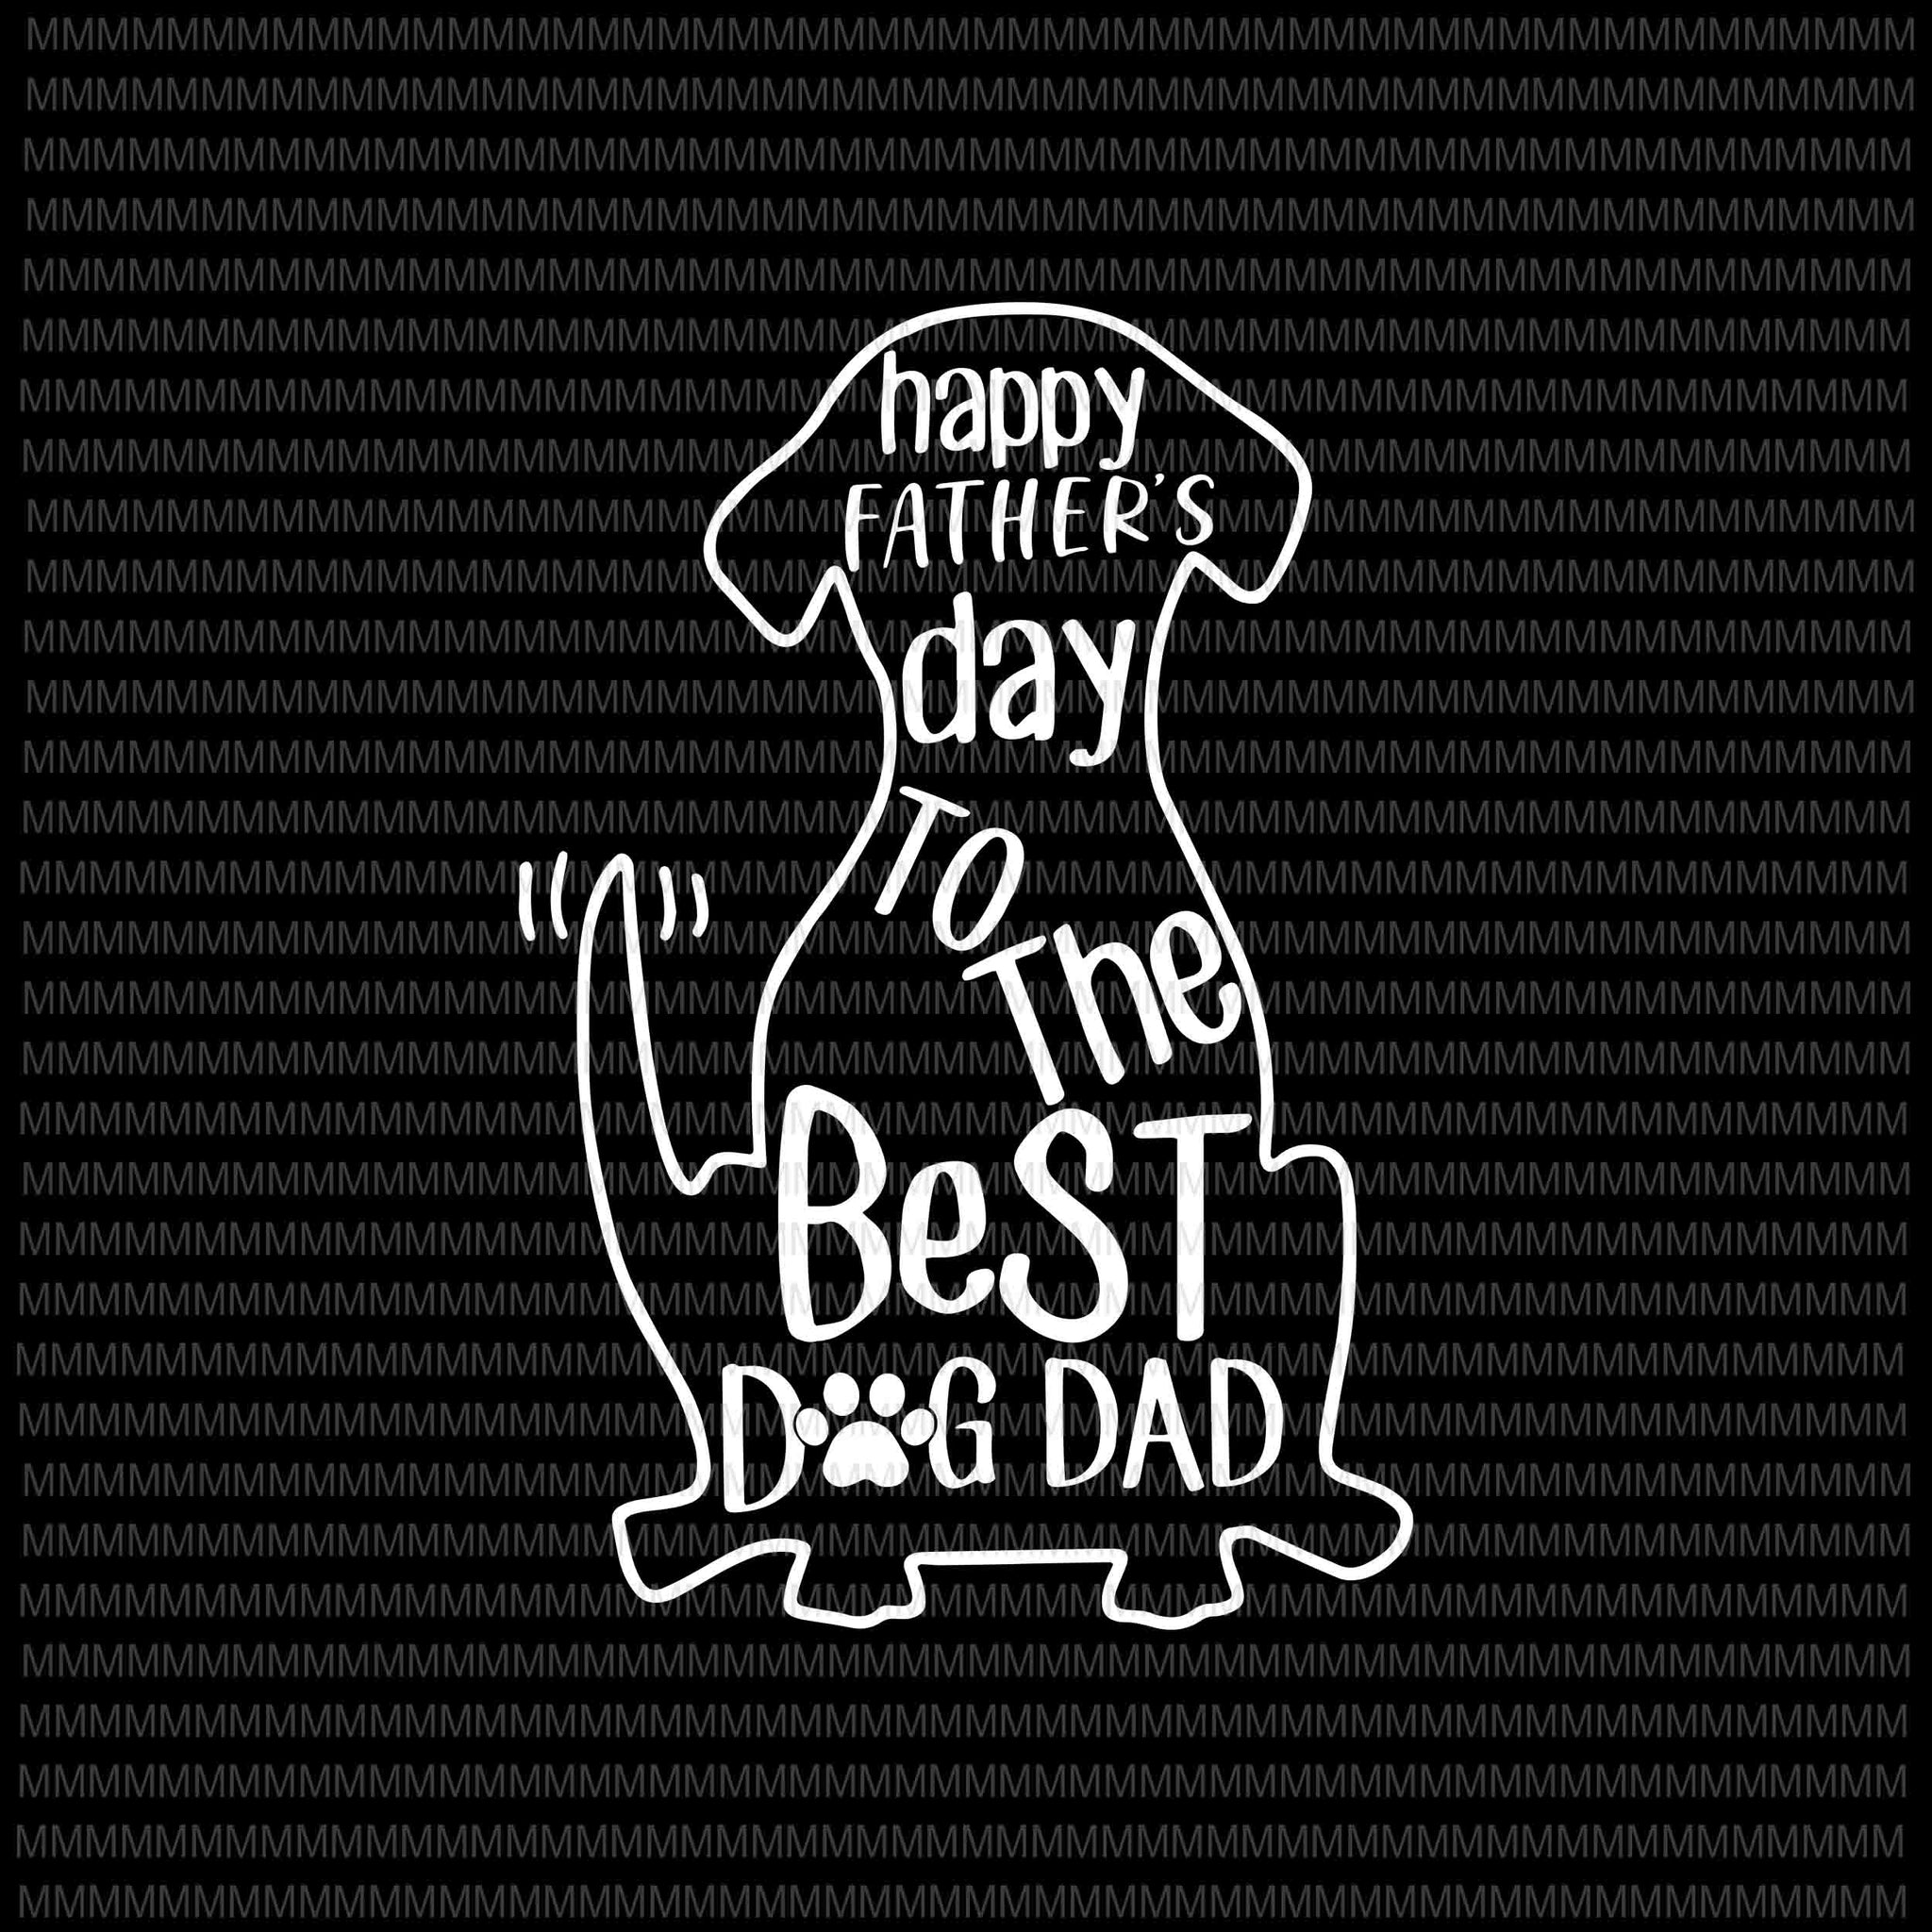 Happy Father's day to the best dog dad svg, Father's day svg, Father's day vector, Dog Dad svg, Dog dad vector, svg, png, dxf, eps, ai file